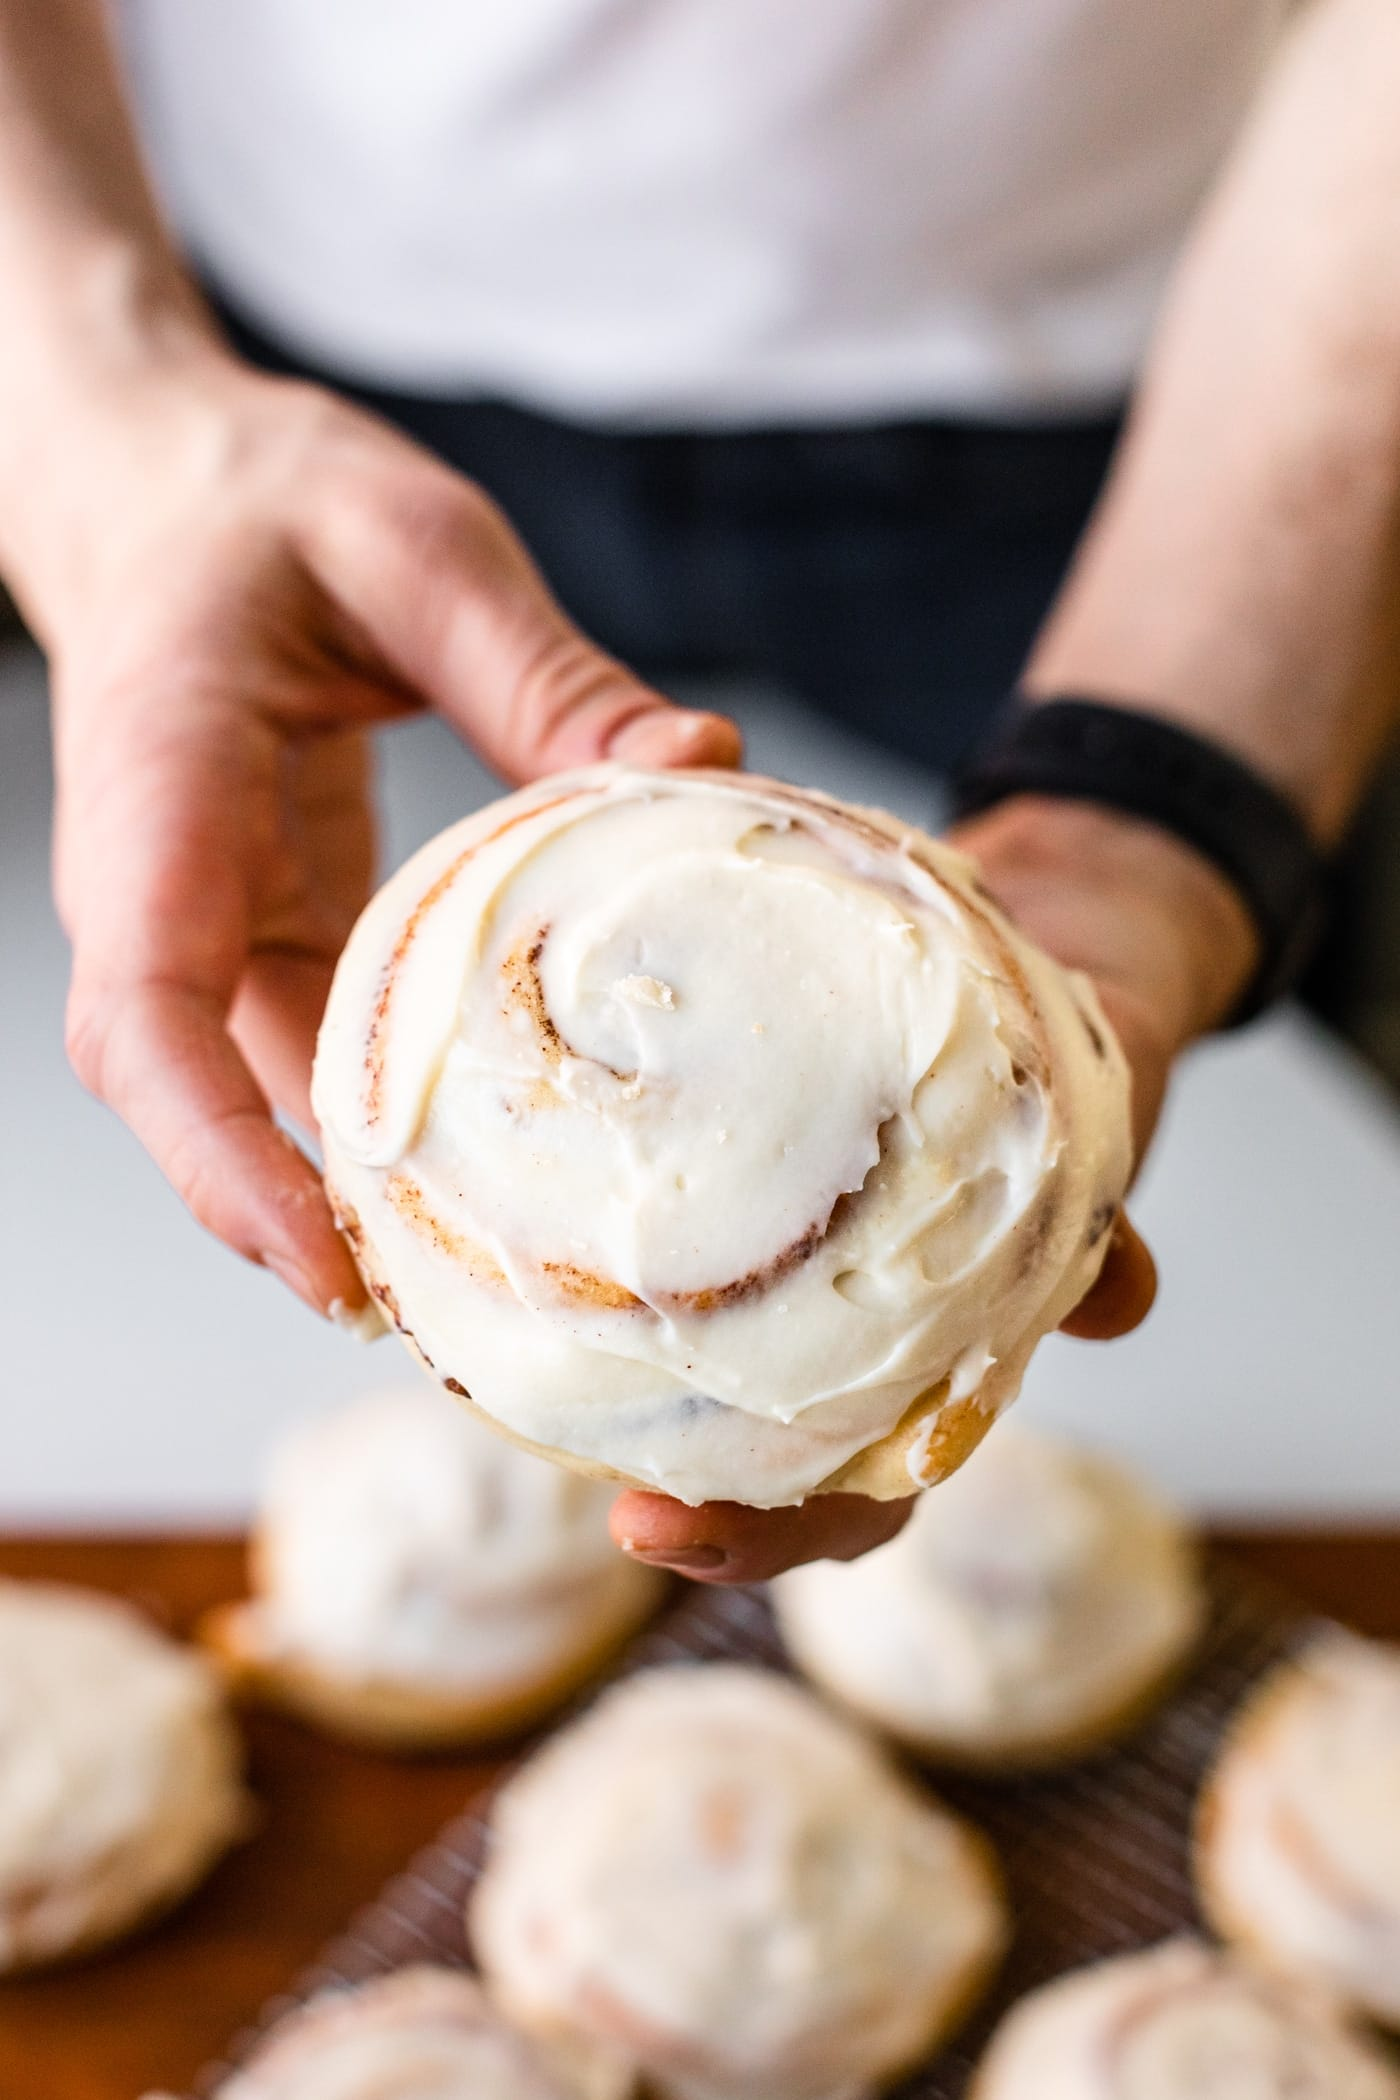 Two hands holding cinnamon roll frosted with cream cheese frosting with extra cinnamon rolls cooling in background